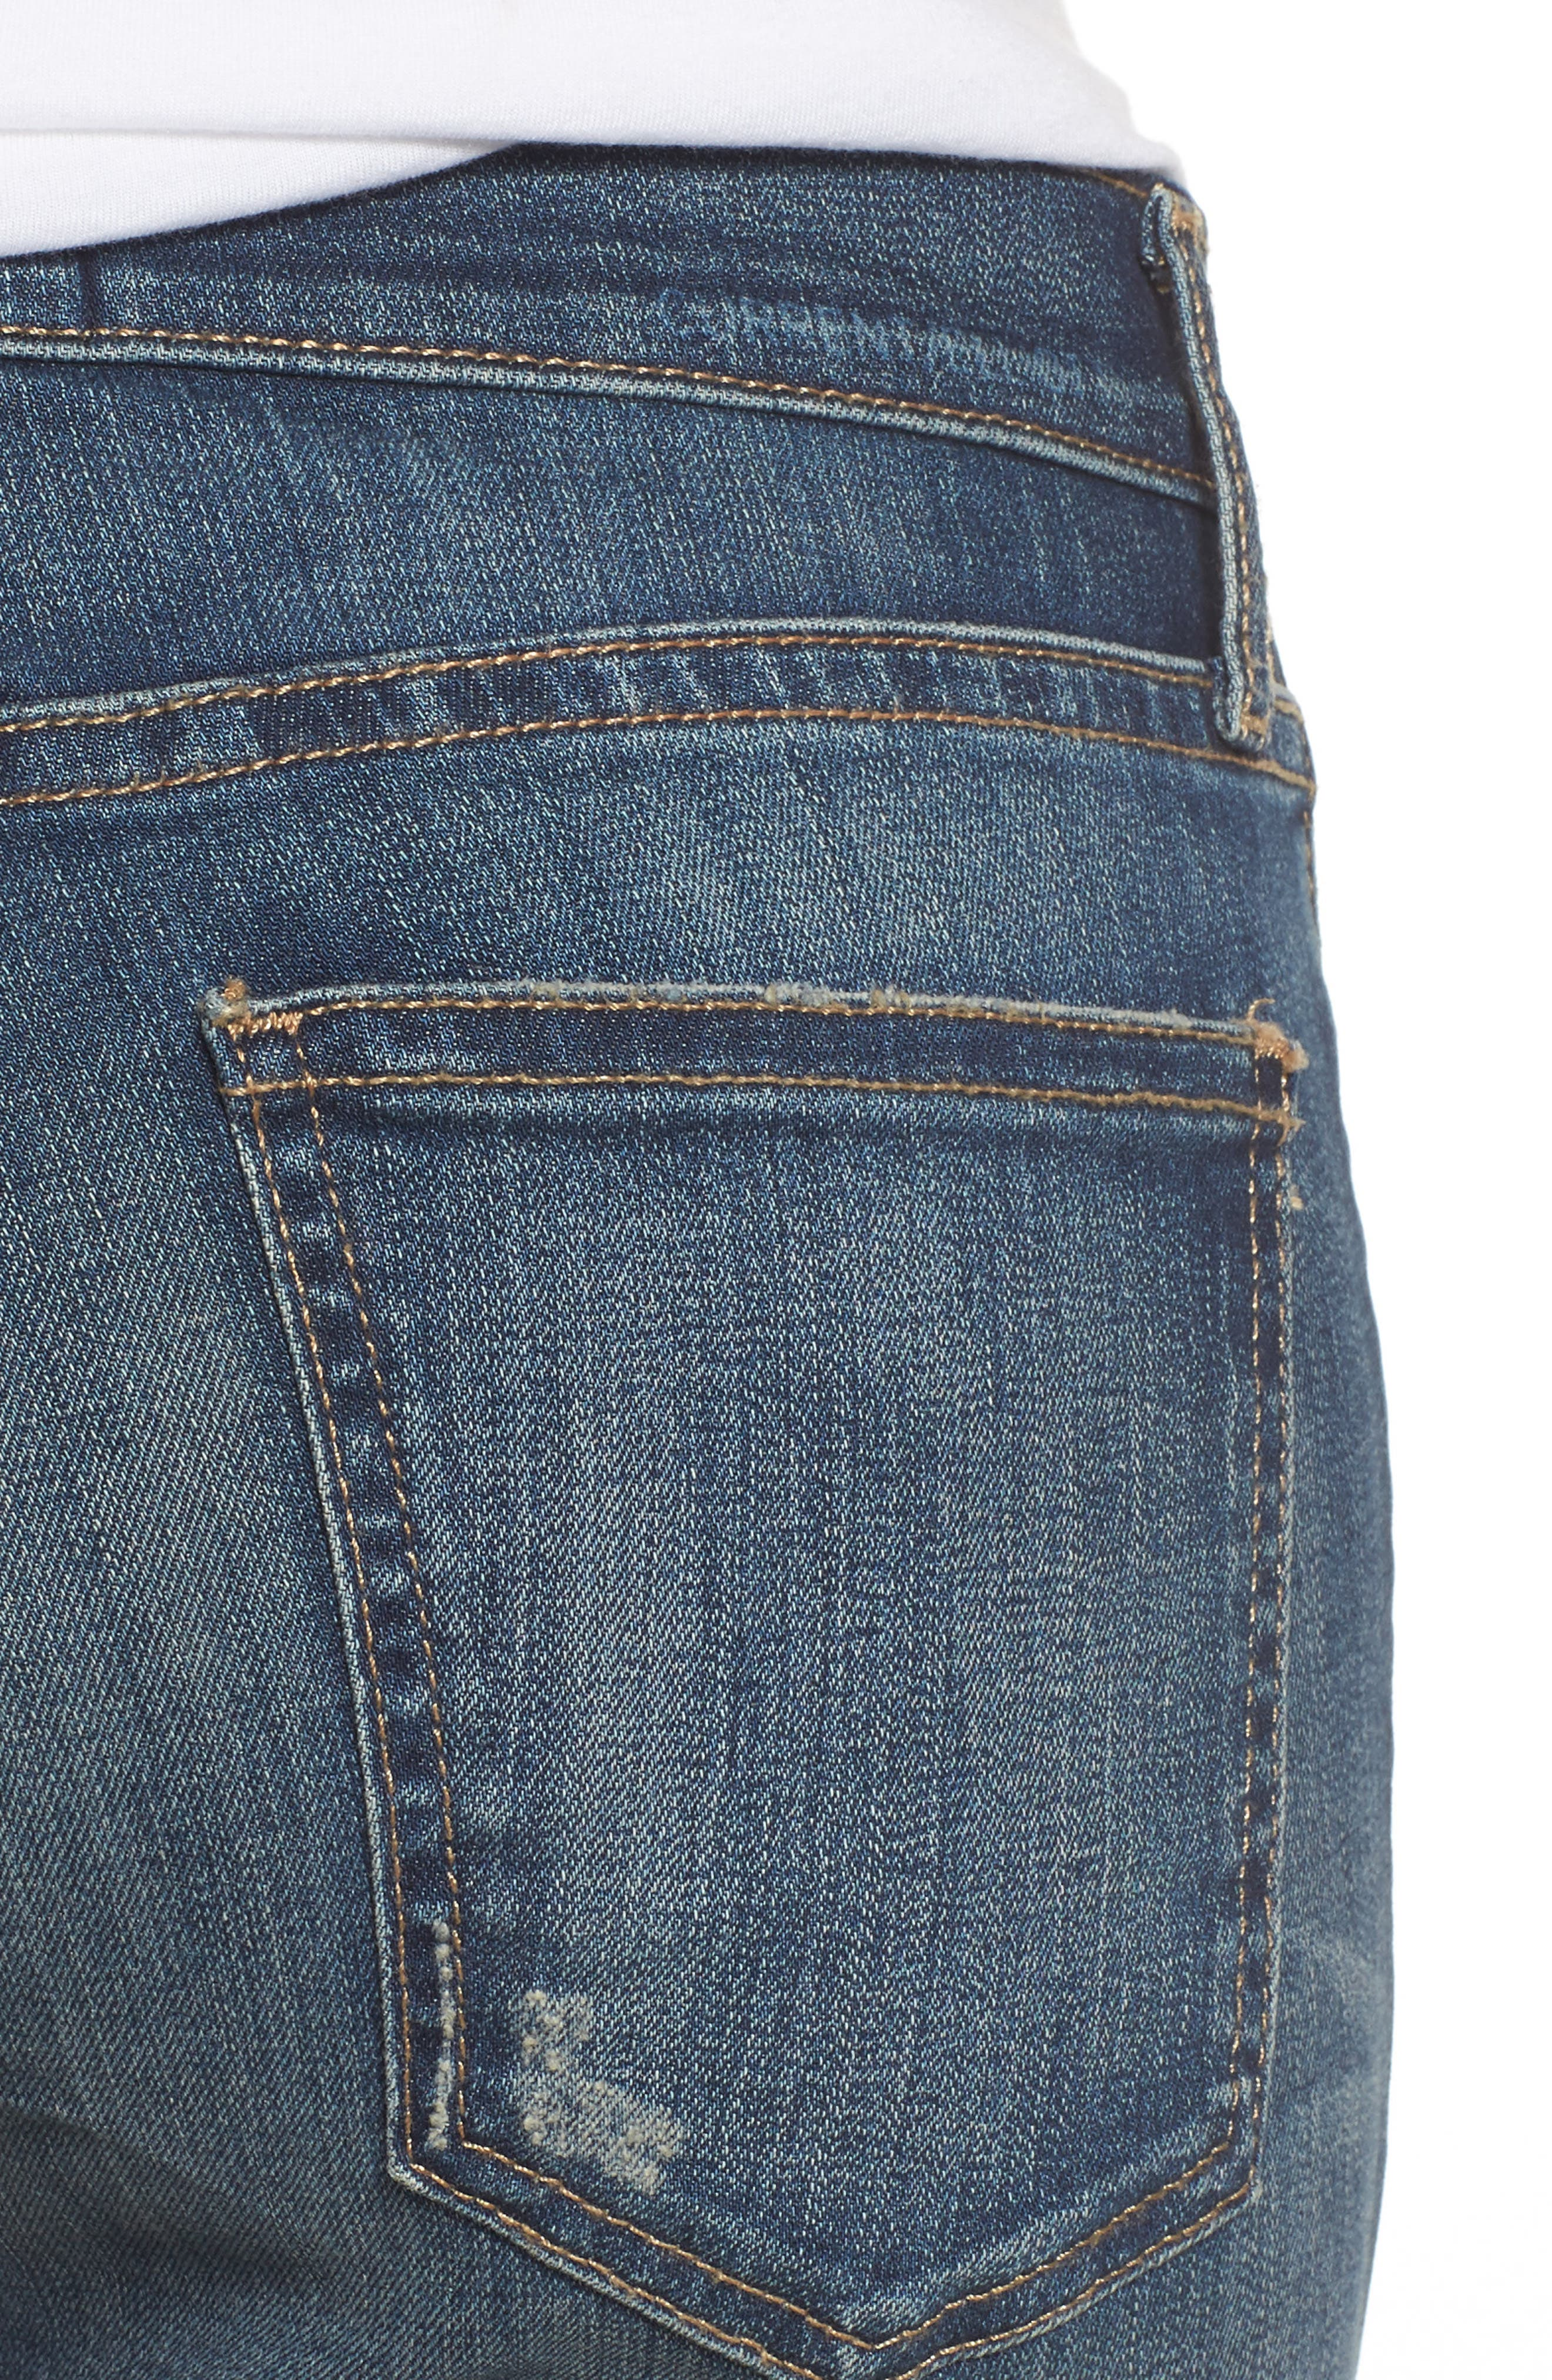 'The Stiletto' Stretch Jeans,                             Alternate thumbnail 9, color,